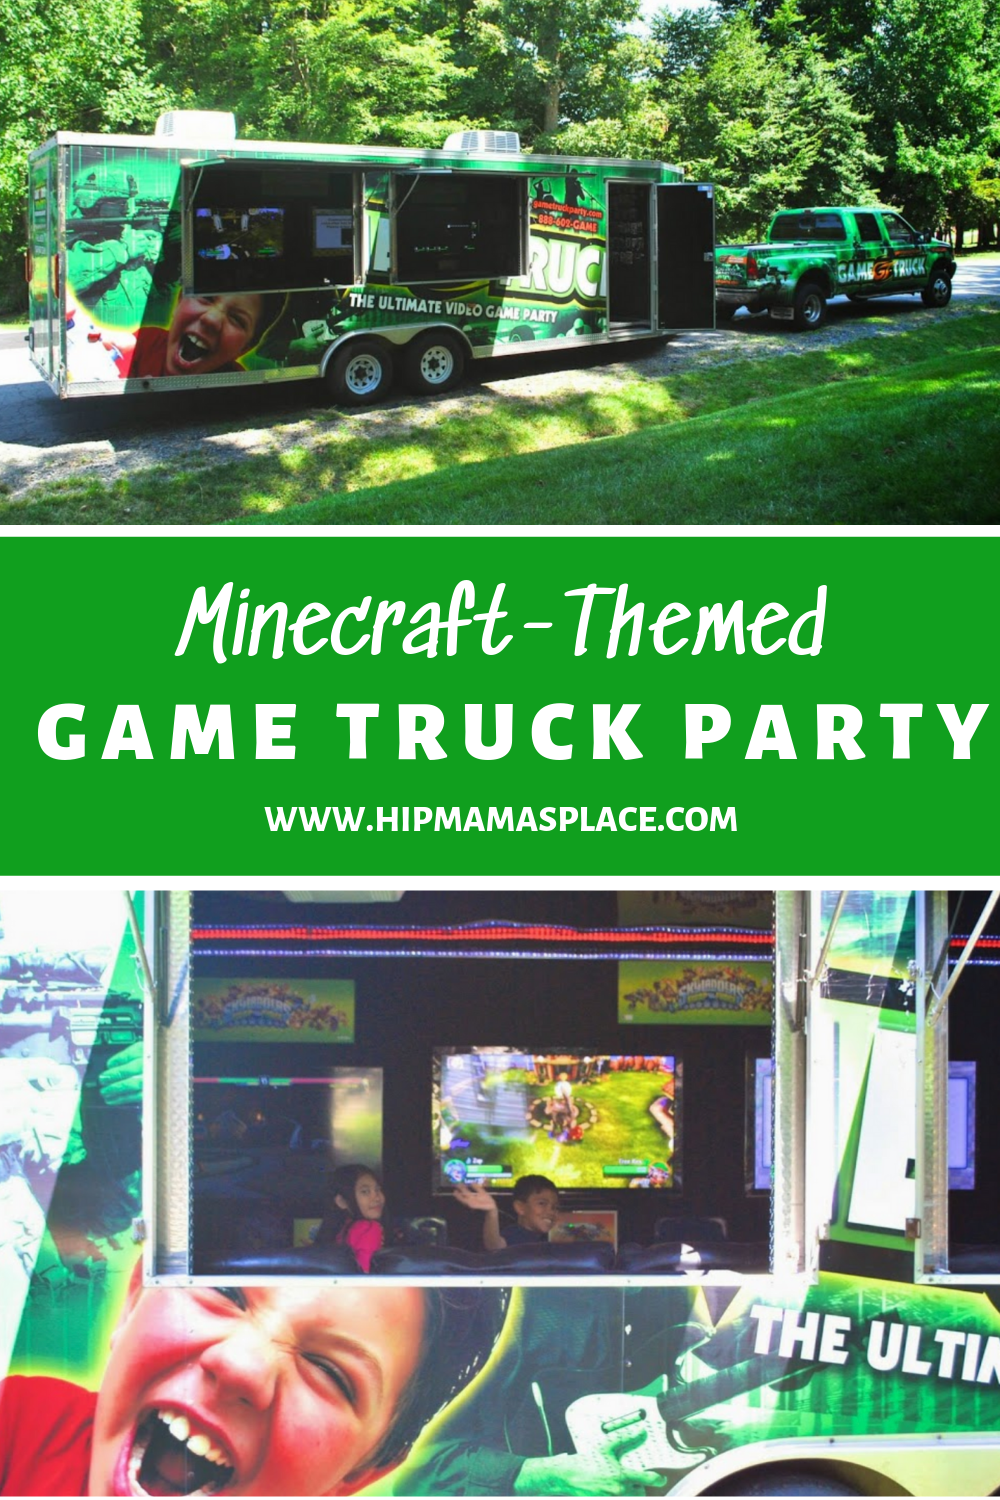 Minecraft-Themed Game Truck Party